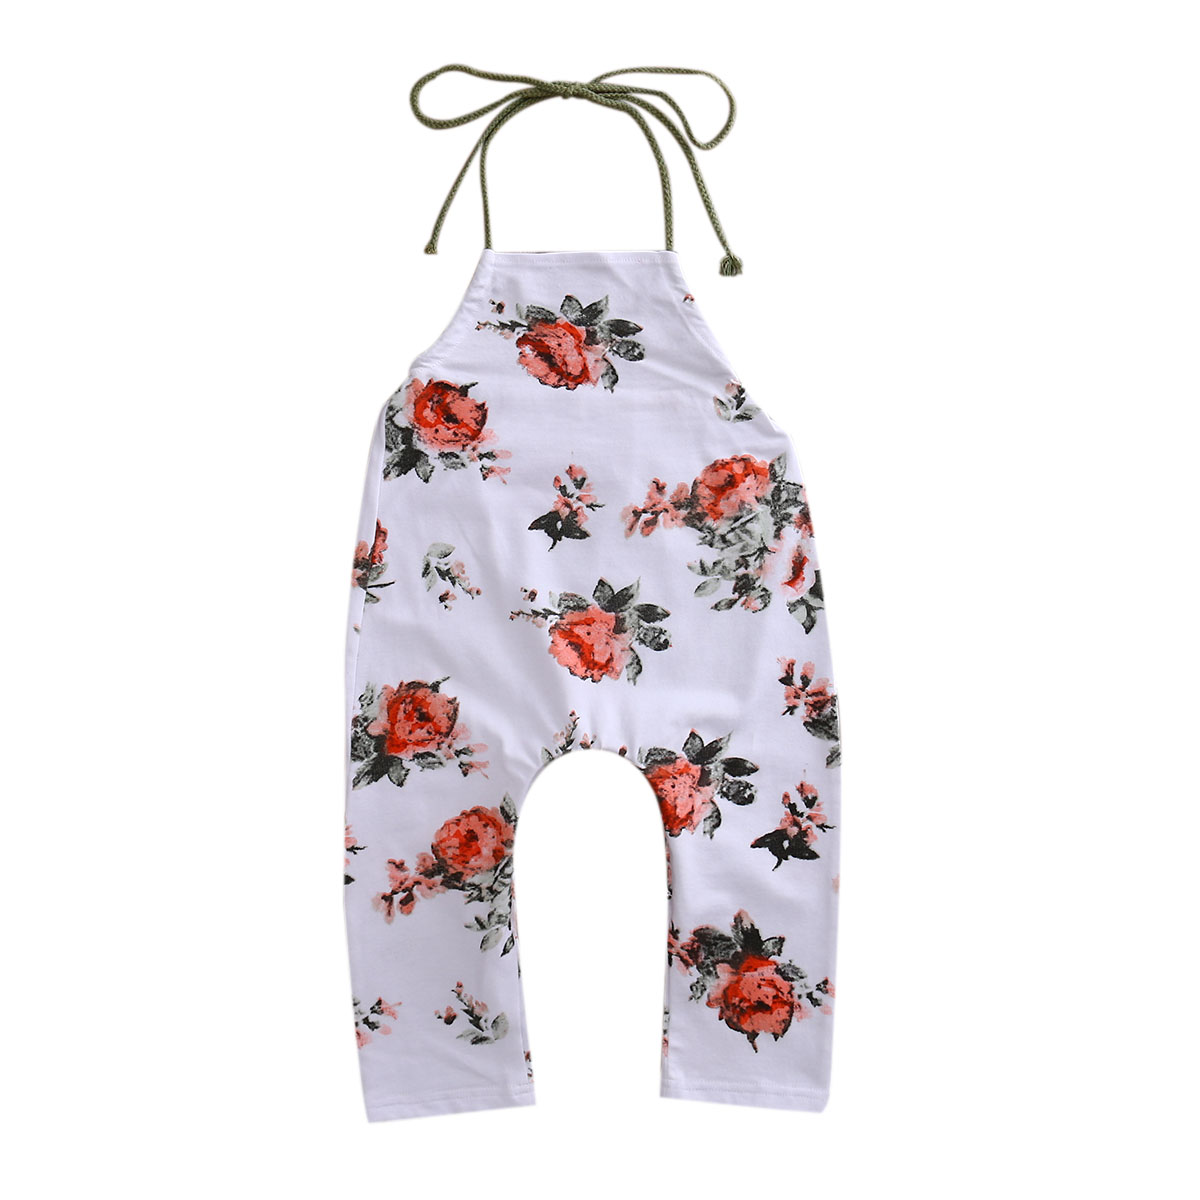 0-5T Babies Summer Floral Strap Rompers Toddler Baby Girl Flower Romper Sleeveless Backless Sunsuit Clothing